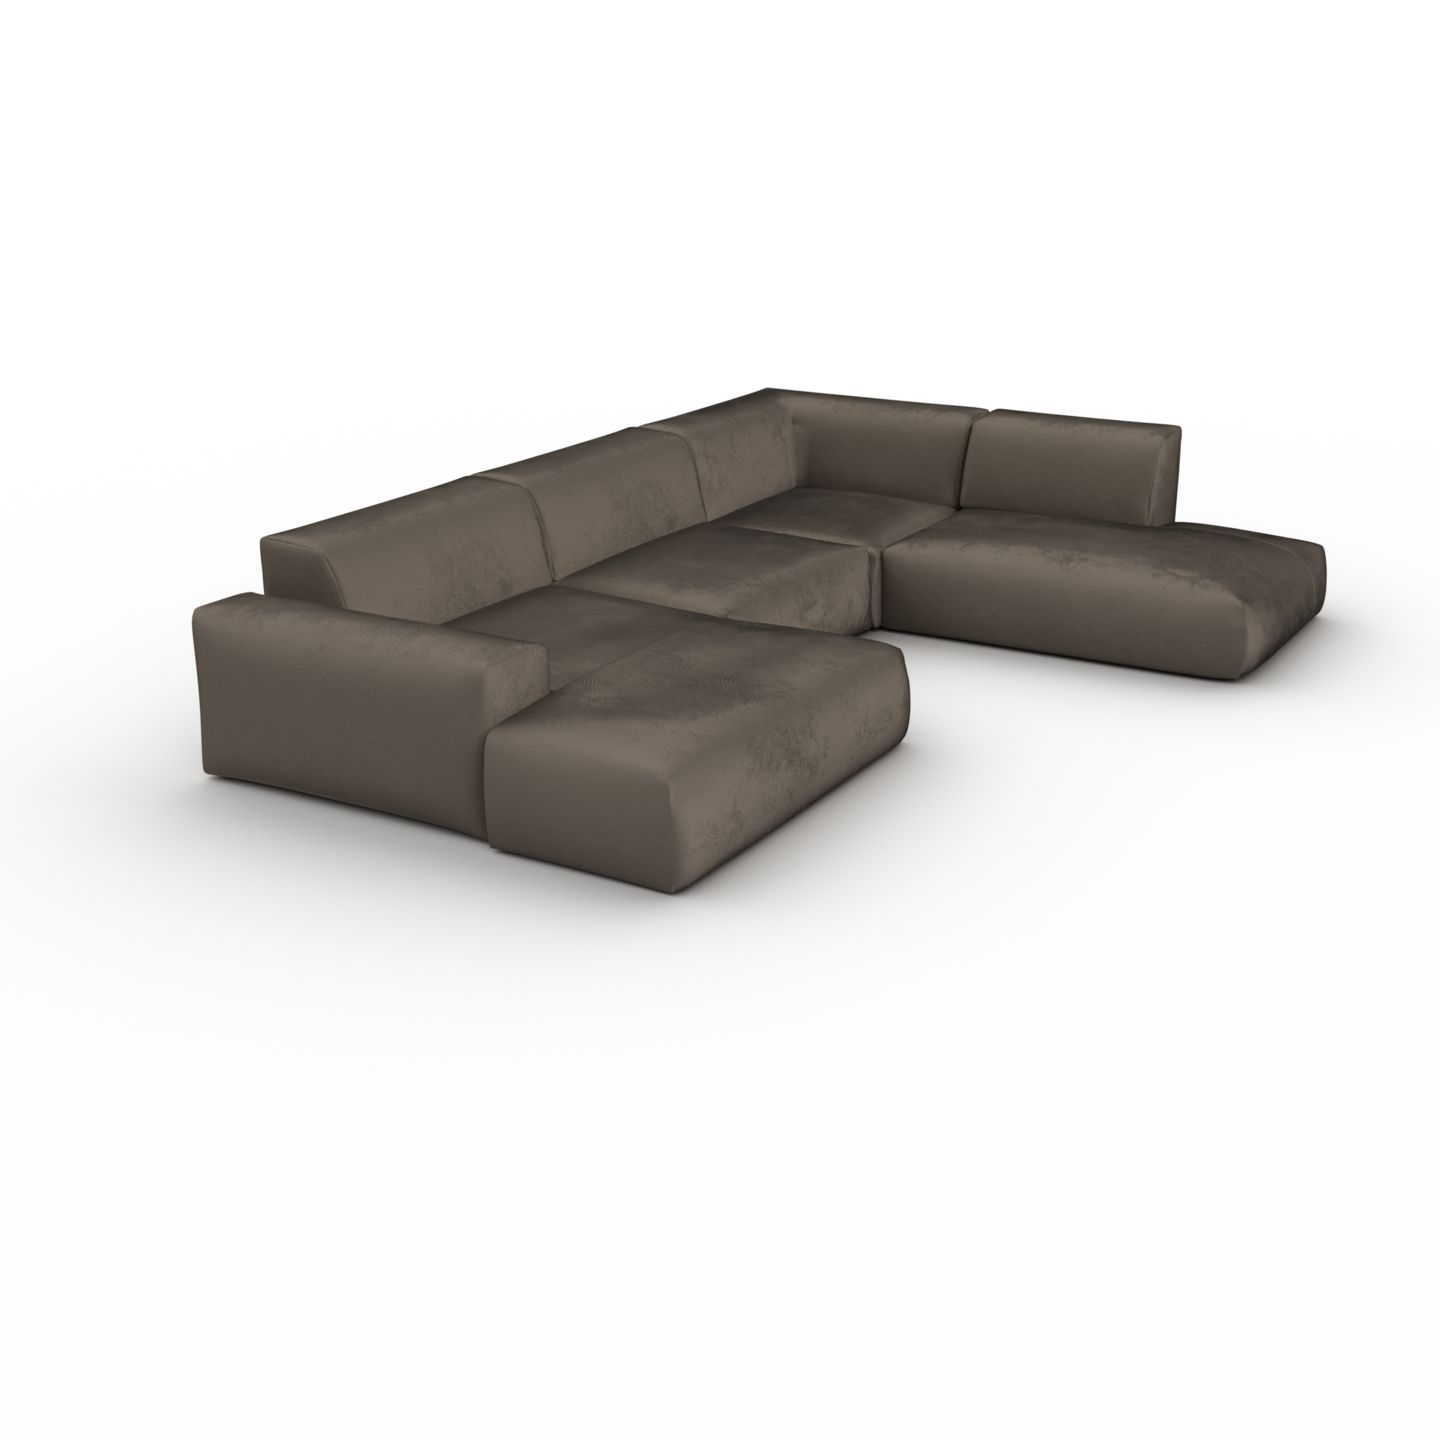 Design Your Own Customized Furniture Online Shop All Interior Define With Images Custom Sectional Sofa Sectional Sofa Sectional